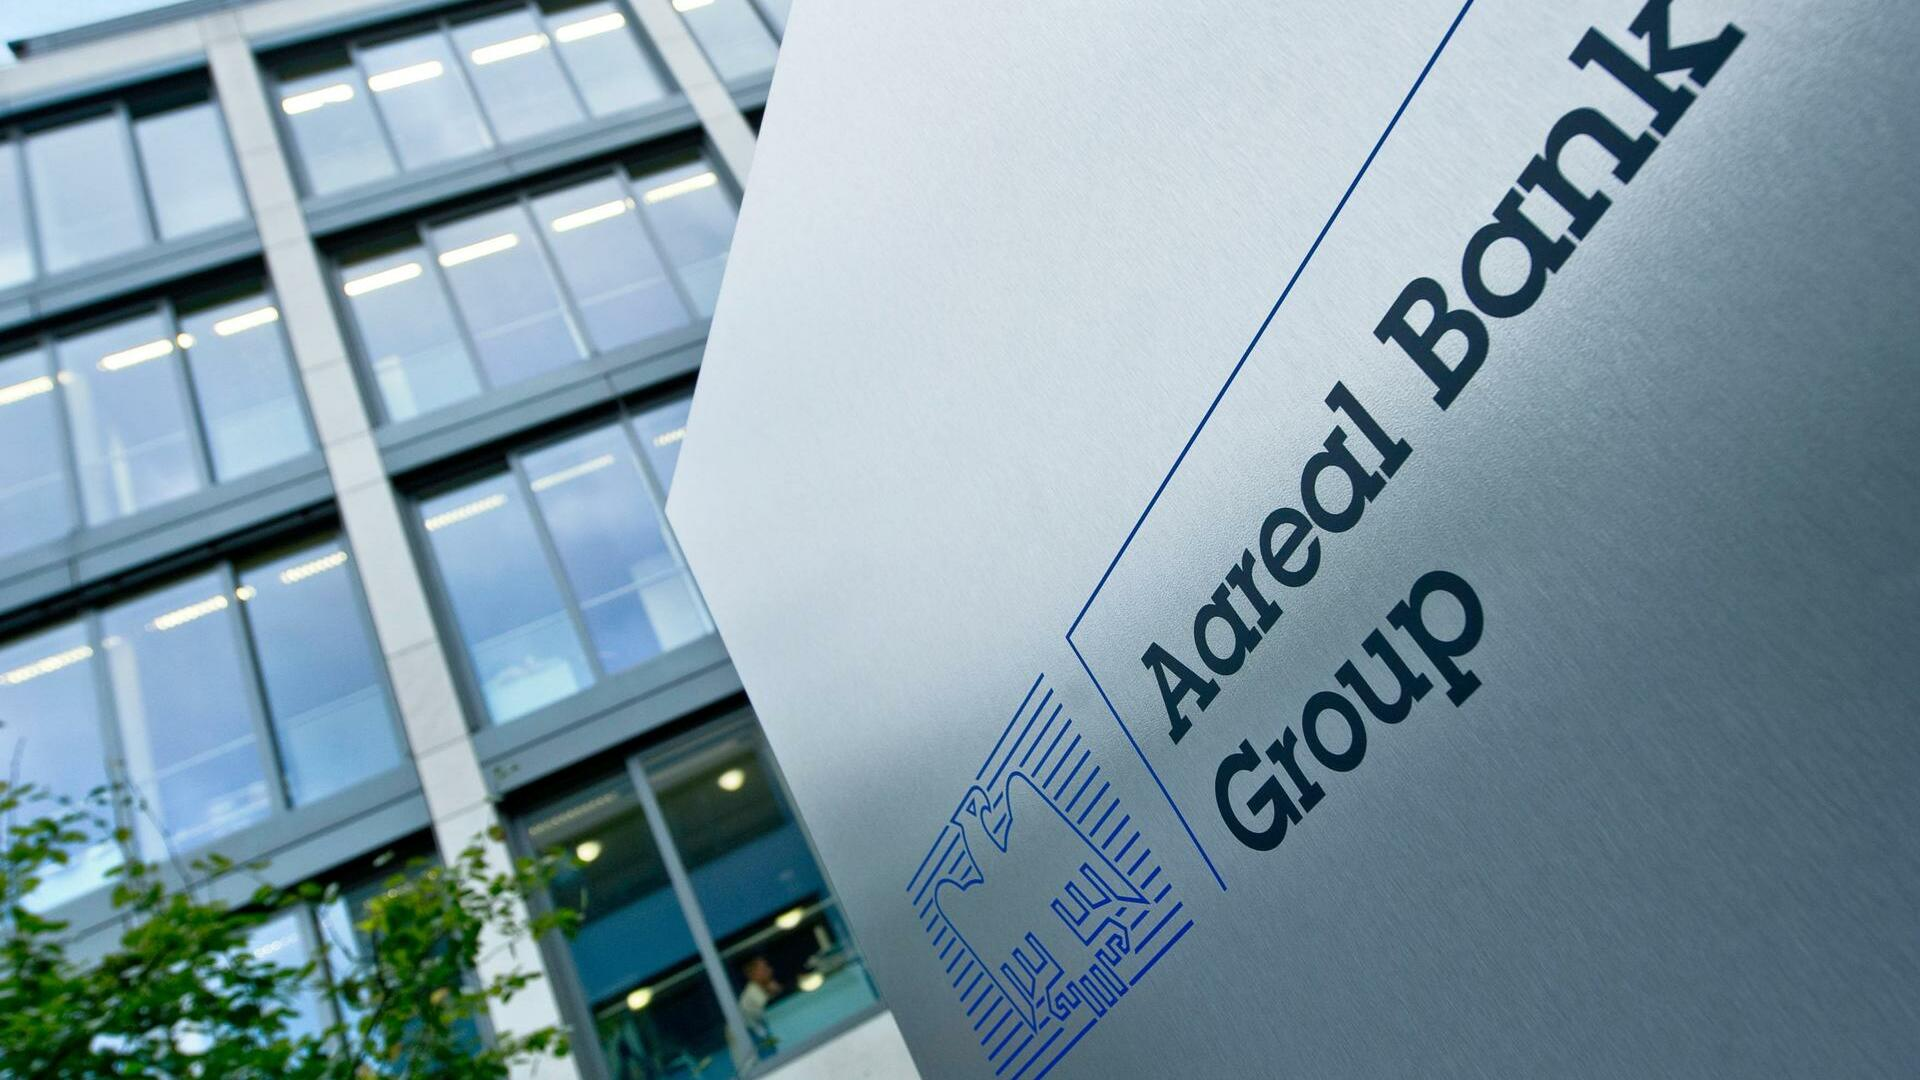 Aareal Bank Group Quelle: PR